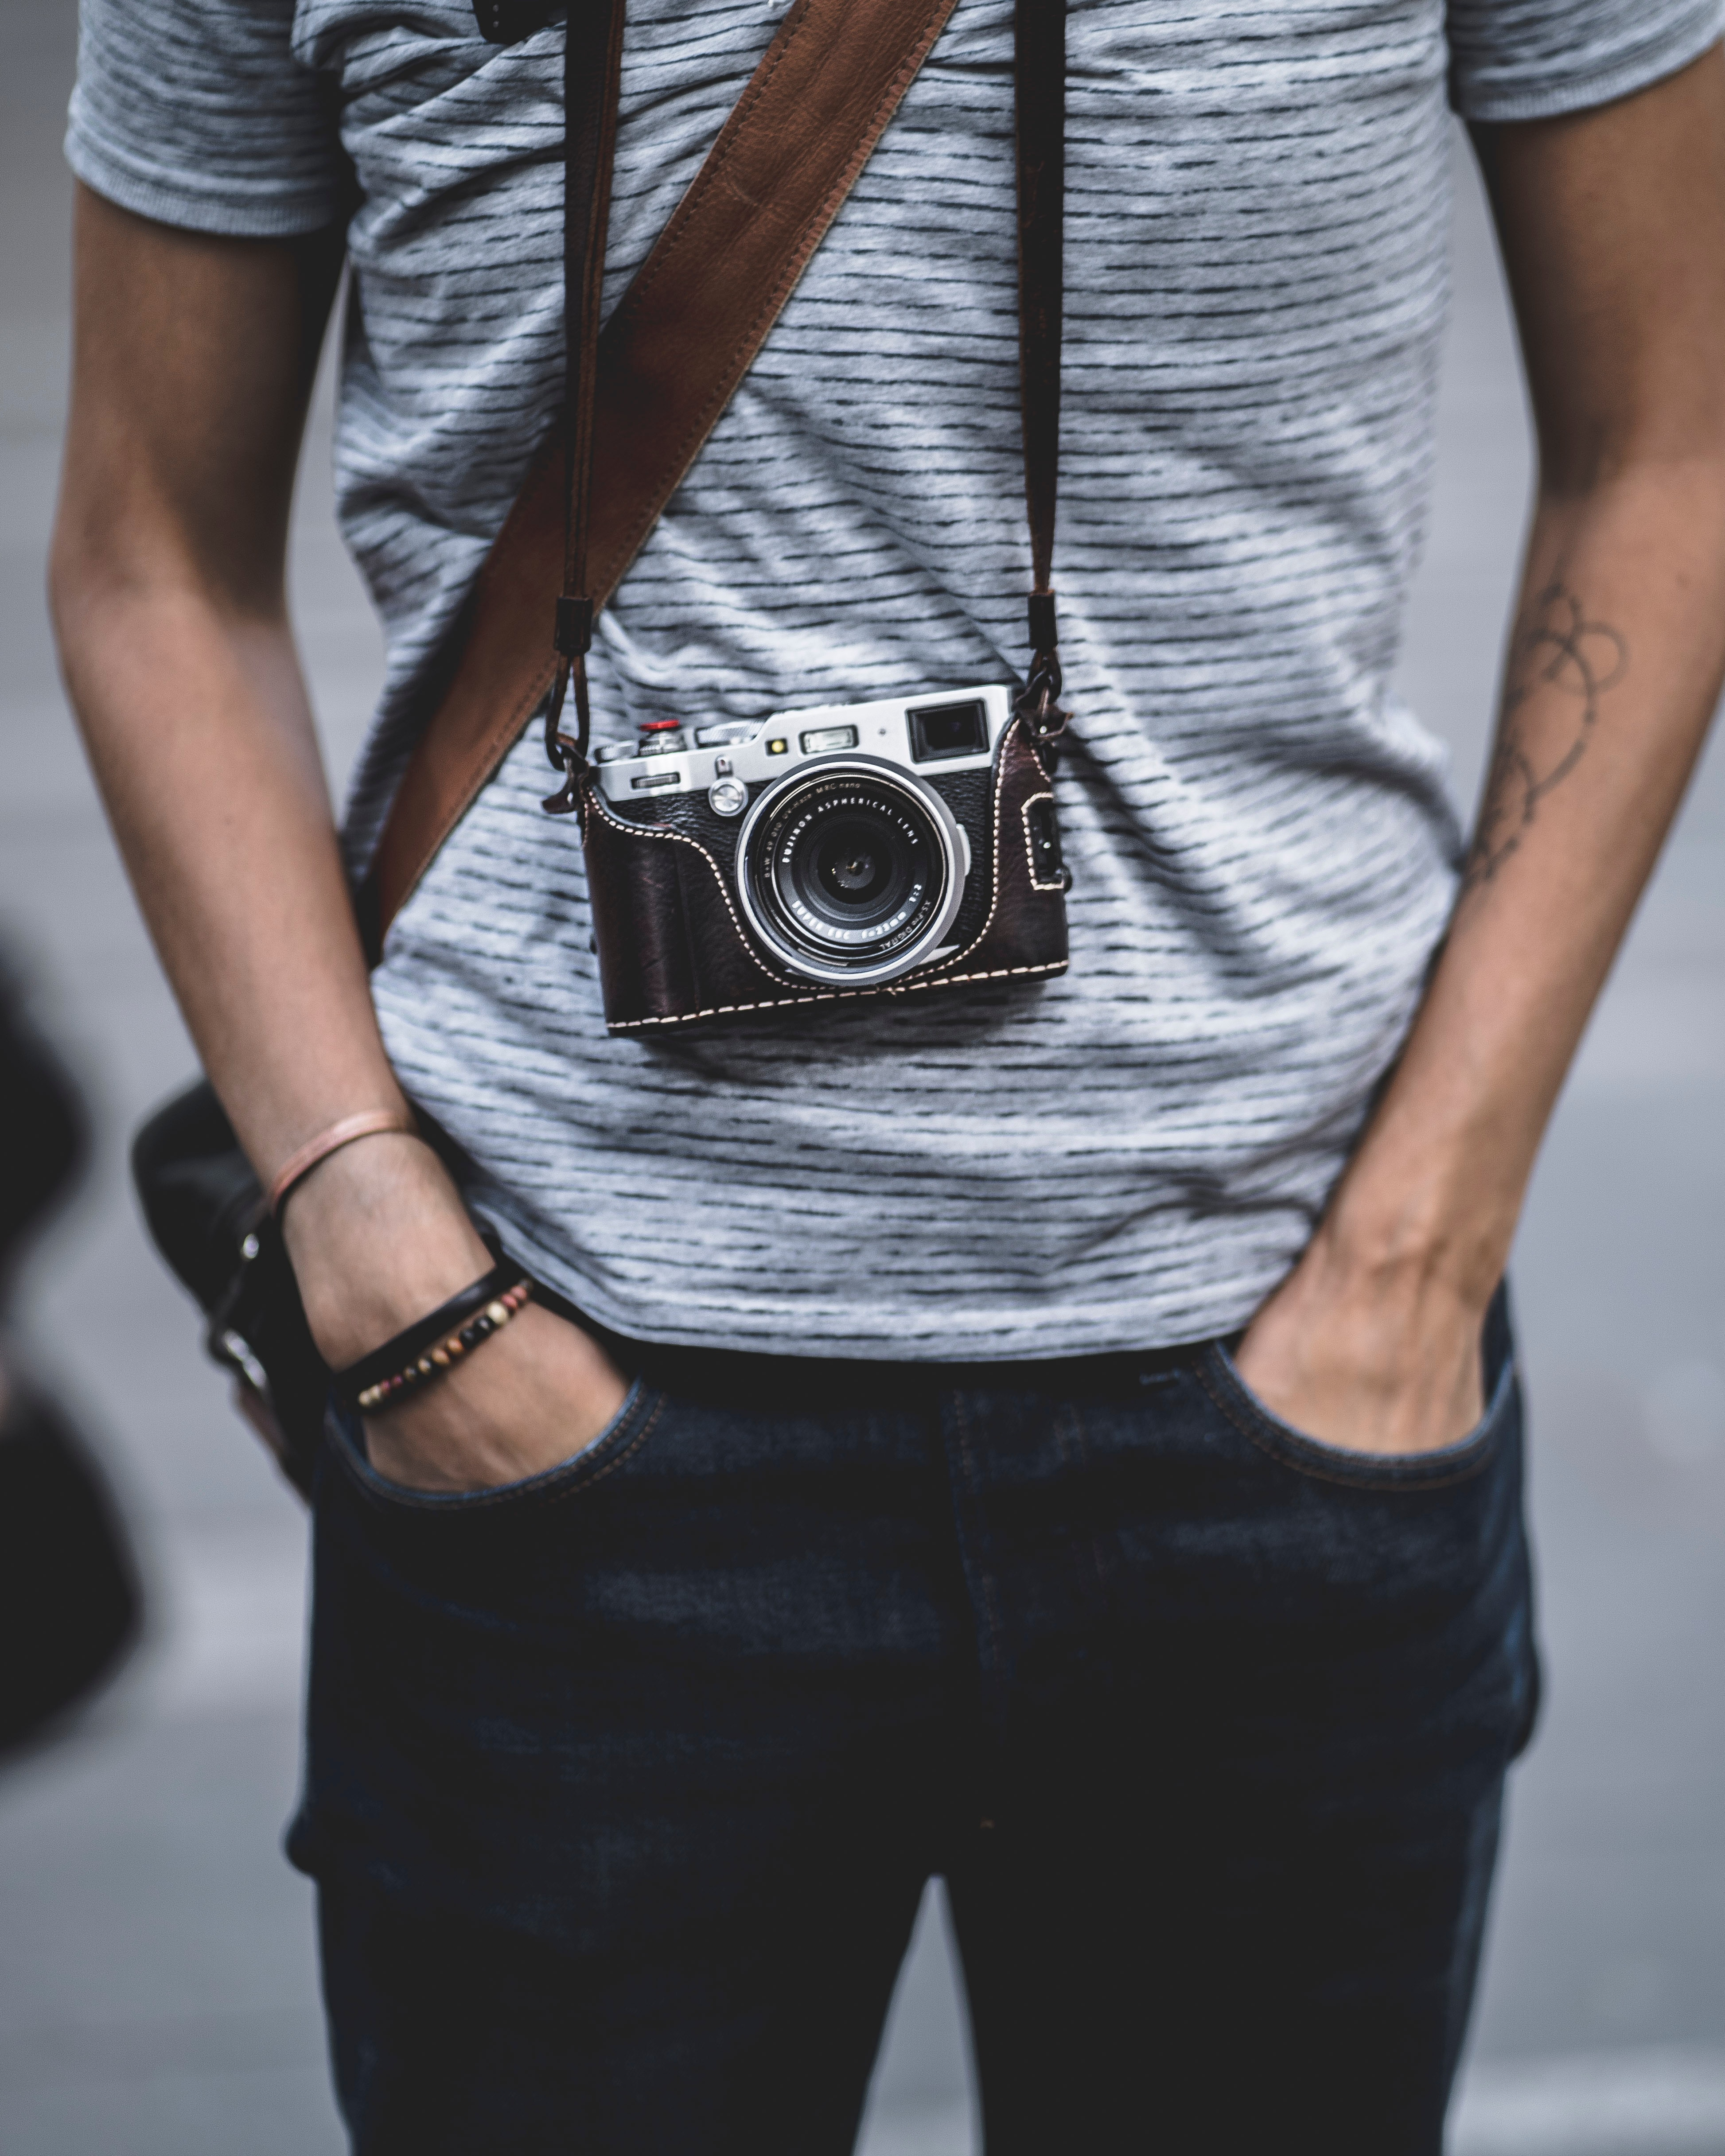 109574 download wallpaper Technologies, Technology, Camera, Photographer, Lens, Hobby screensavers and pictures for free